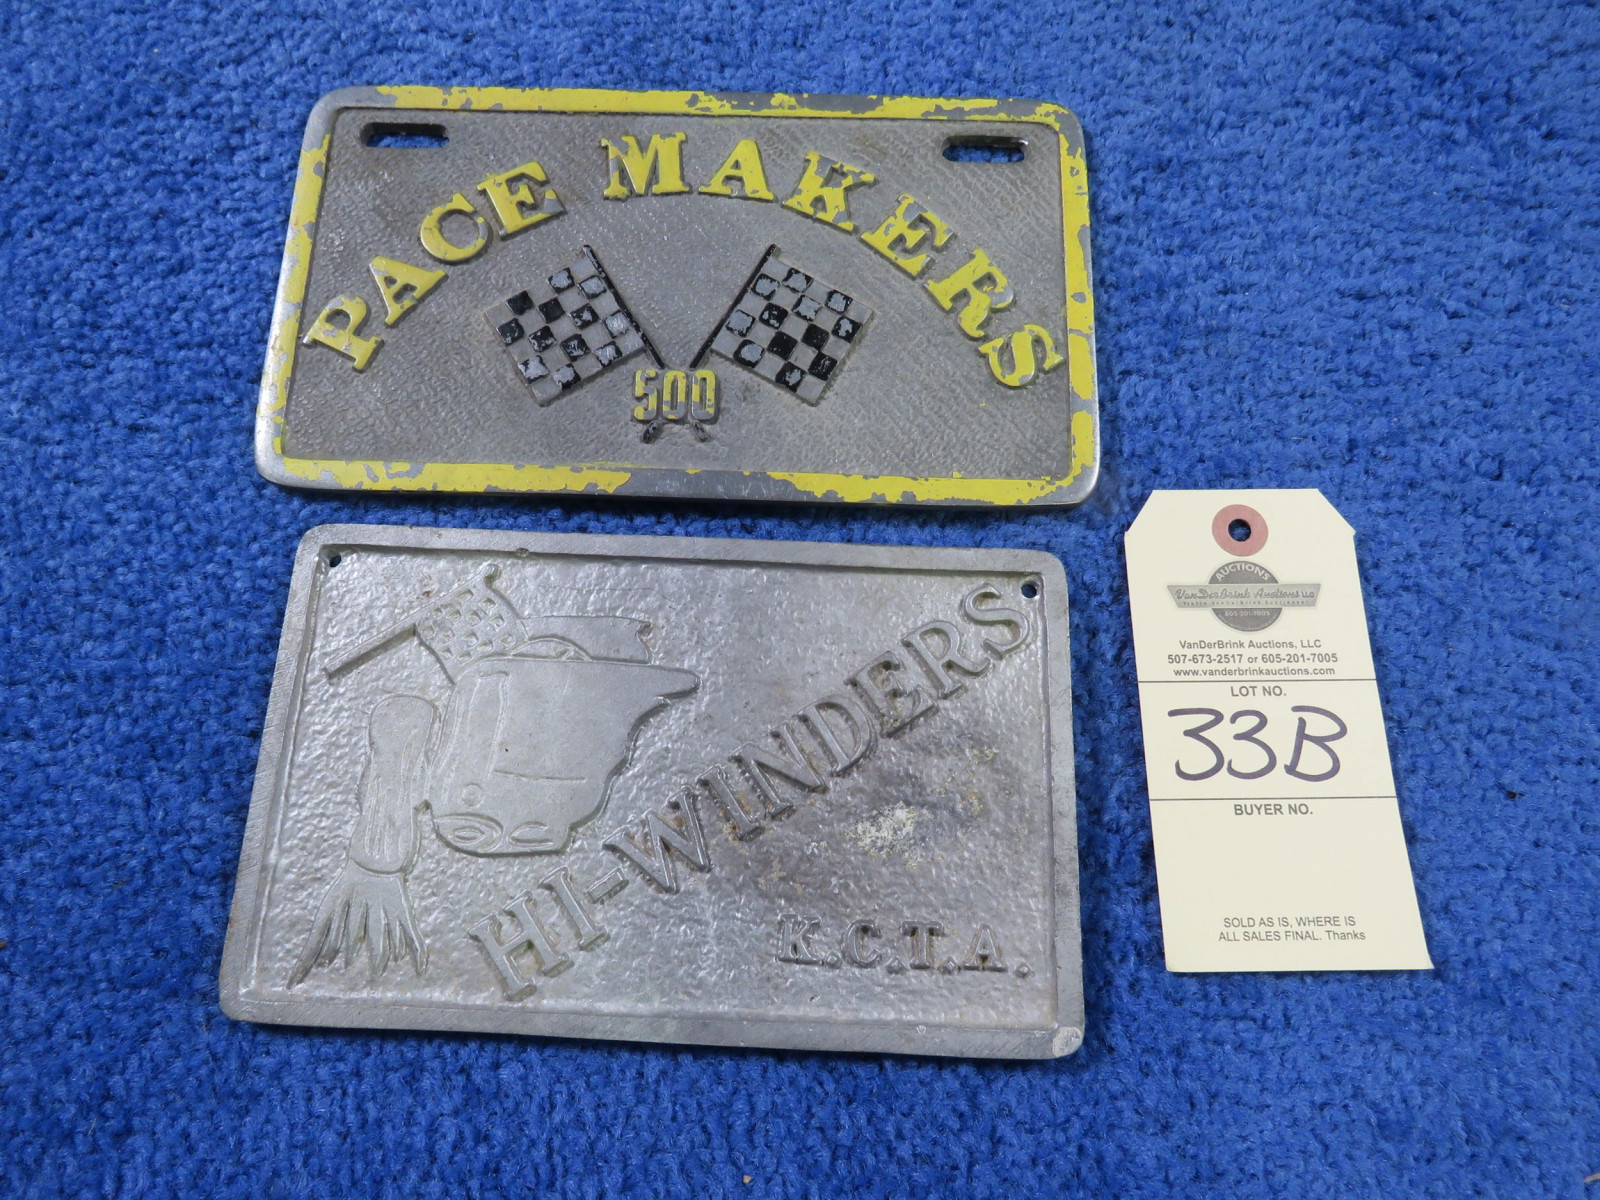 Pace Makers 500 and Hi Winders KCTA Vintage Vehicle Club Plates- Pot Metal - Image 1